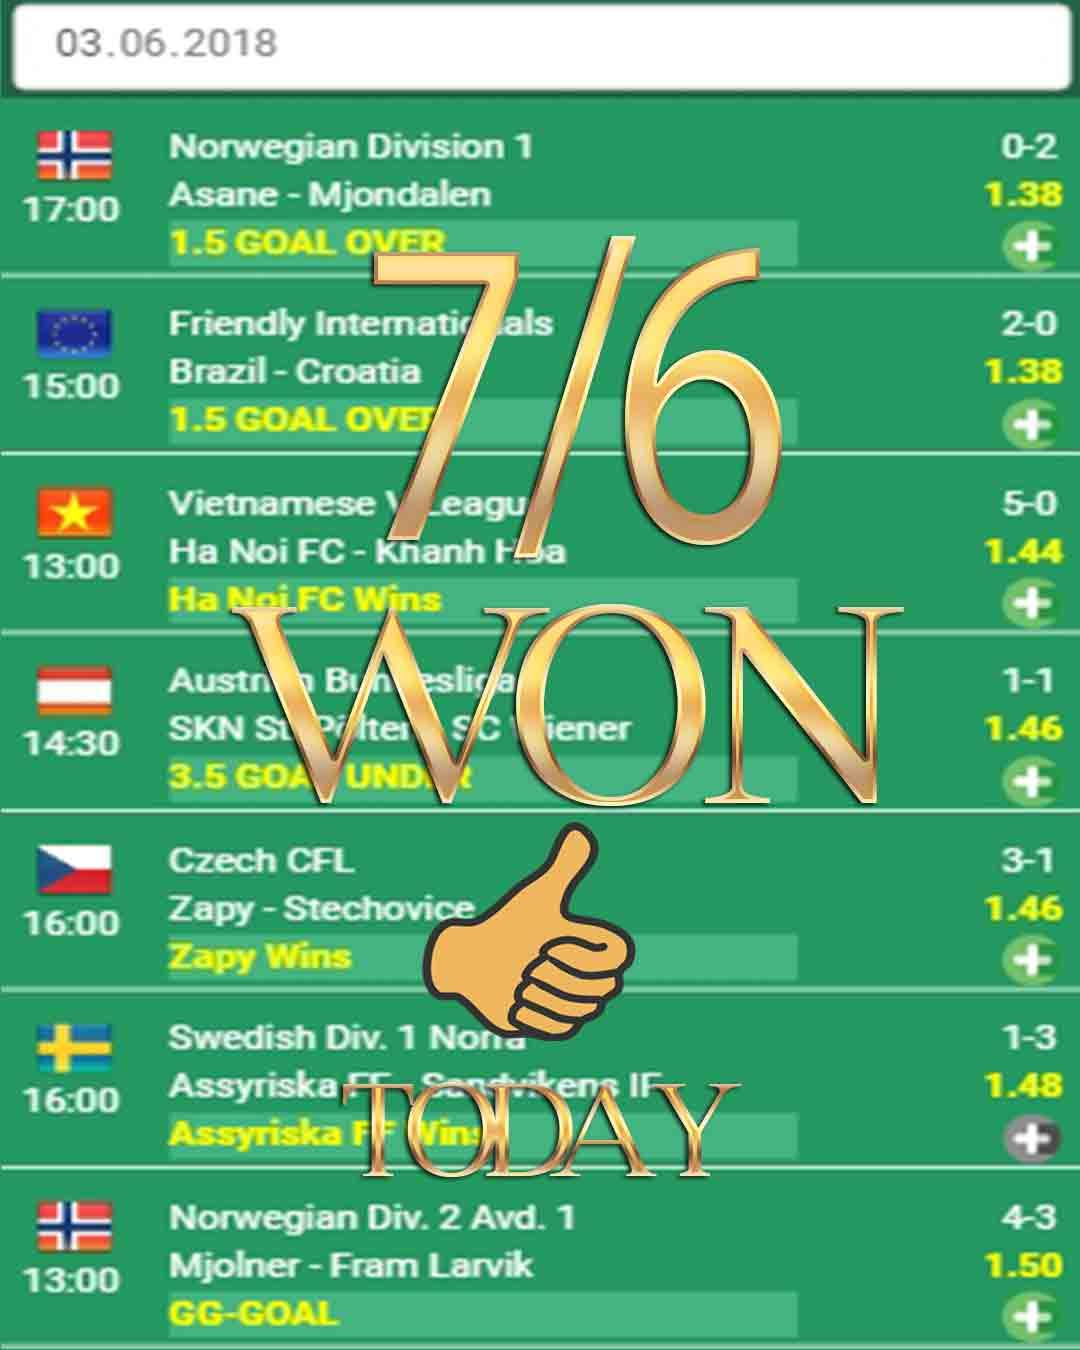 Vip betting odds 7/6 WON Football tipster, fixed match